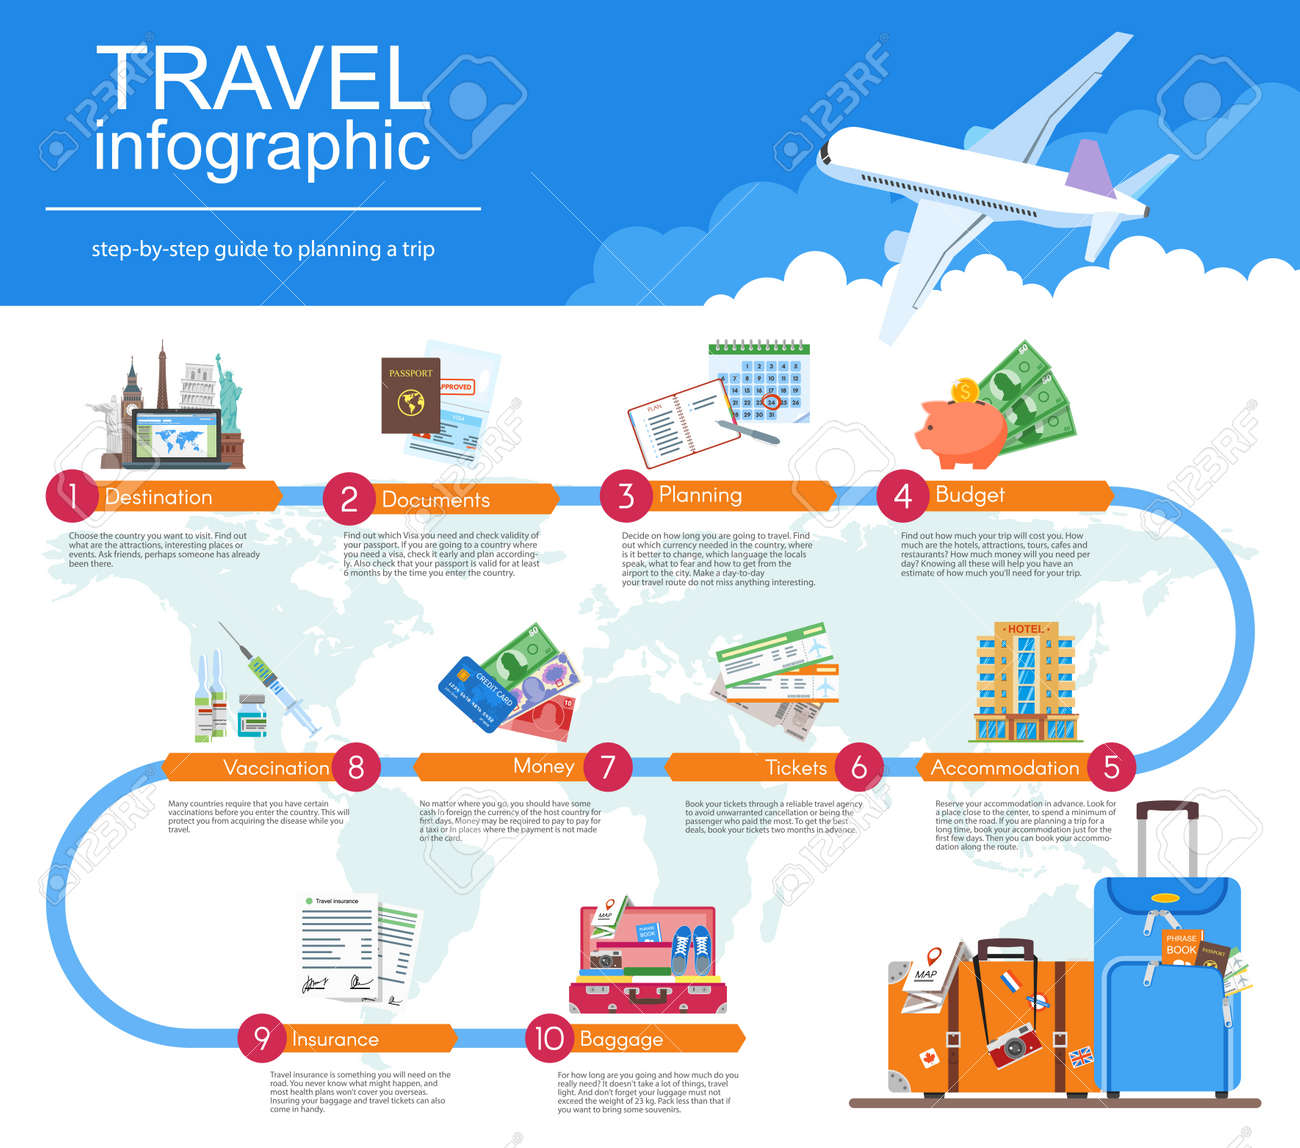 Plan your travel infographic guide. Vacation booking concept. Vector illustration in flat style design. Hotel and air tickets booking, visa, landmarks icons. Archivio Fotografico - 52473550